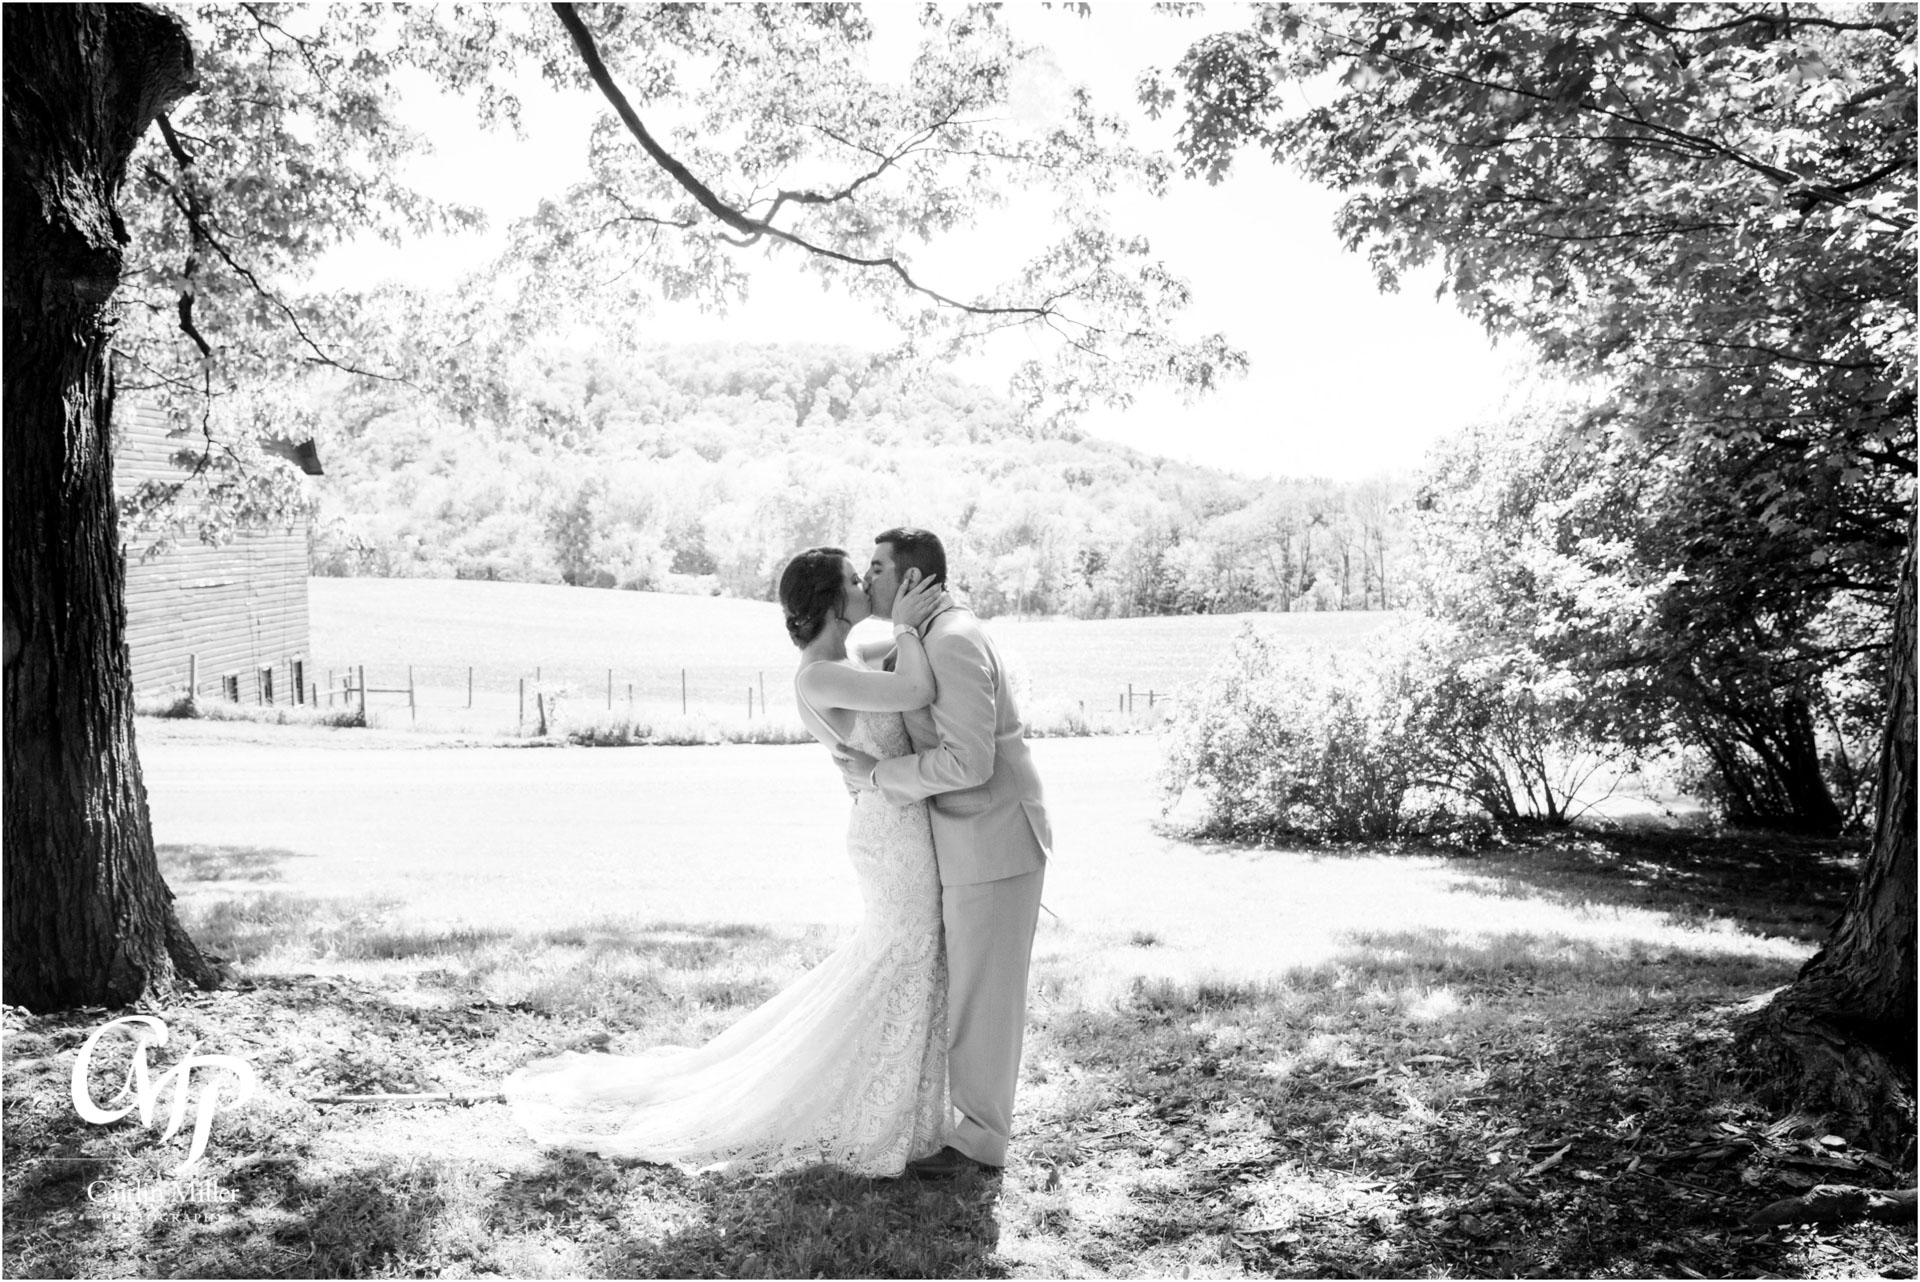 davidson-17.jpg from Kaitlyn and Ryan's wedding at the Davidson Family Farm in Greenwich, NY by Saratoga Wedding Photographer Caitlin Miller Photography. Lake George Wedding Photographer. Stamford wedding photographer. Albany wedding photographer. Greenwich Wedding Photographer. Saratoga Wedding Photographer